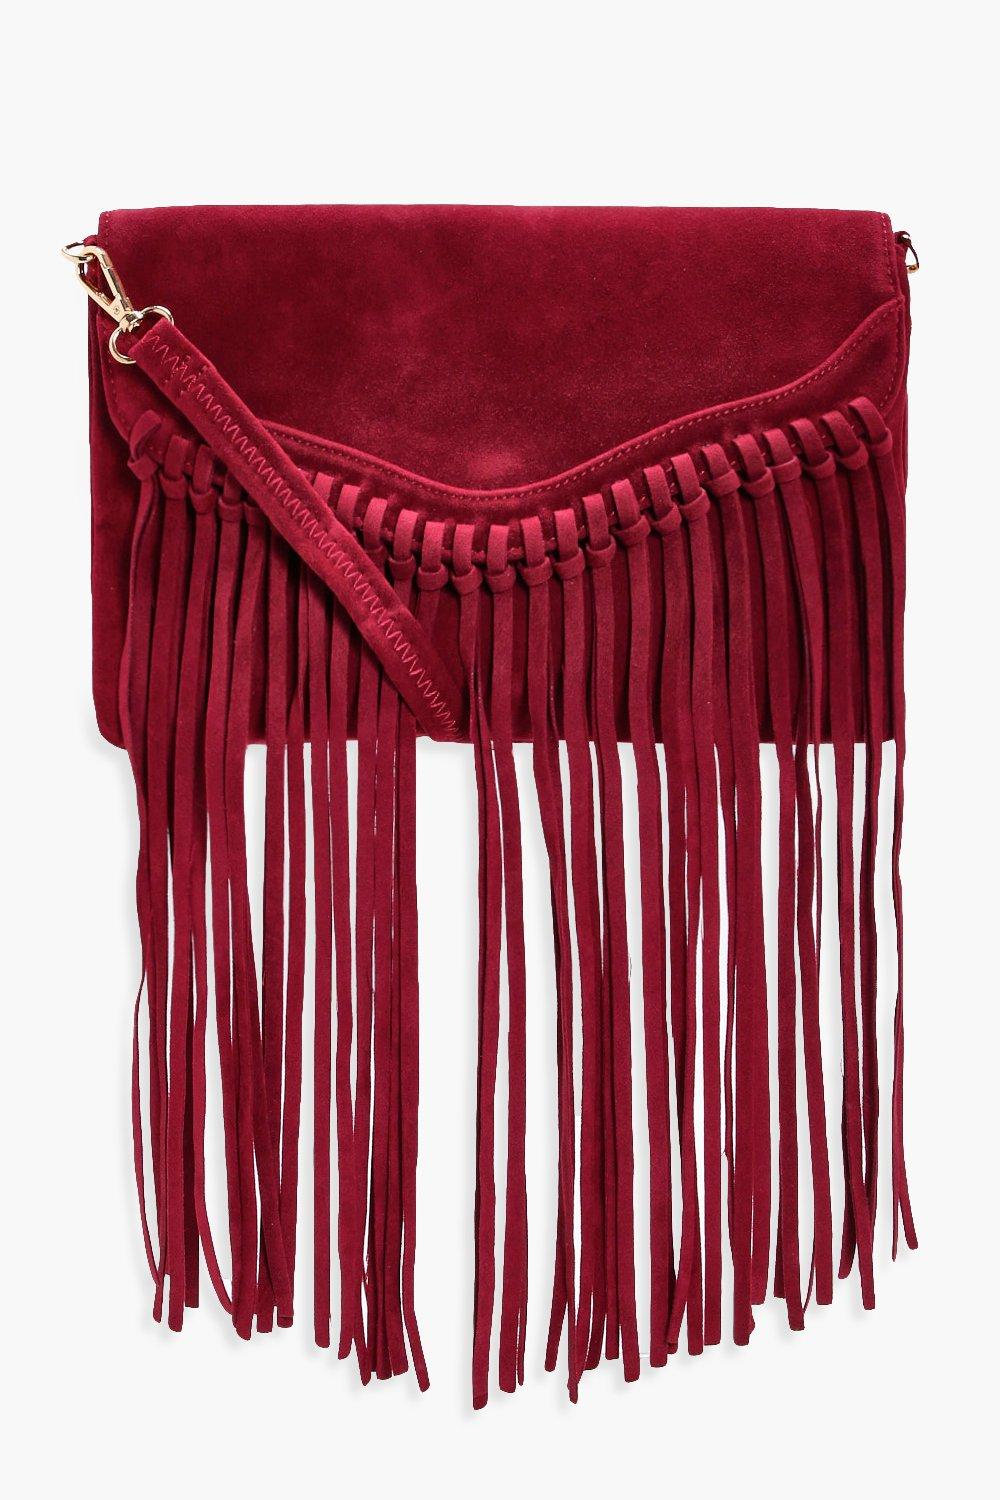 Fringed Suedette Cross Body Bag - wine - Emily Fri